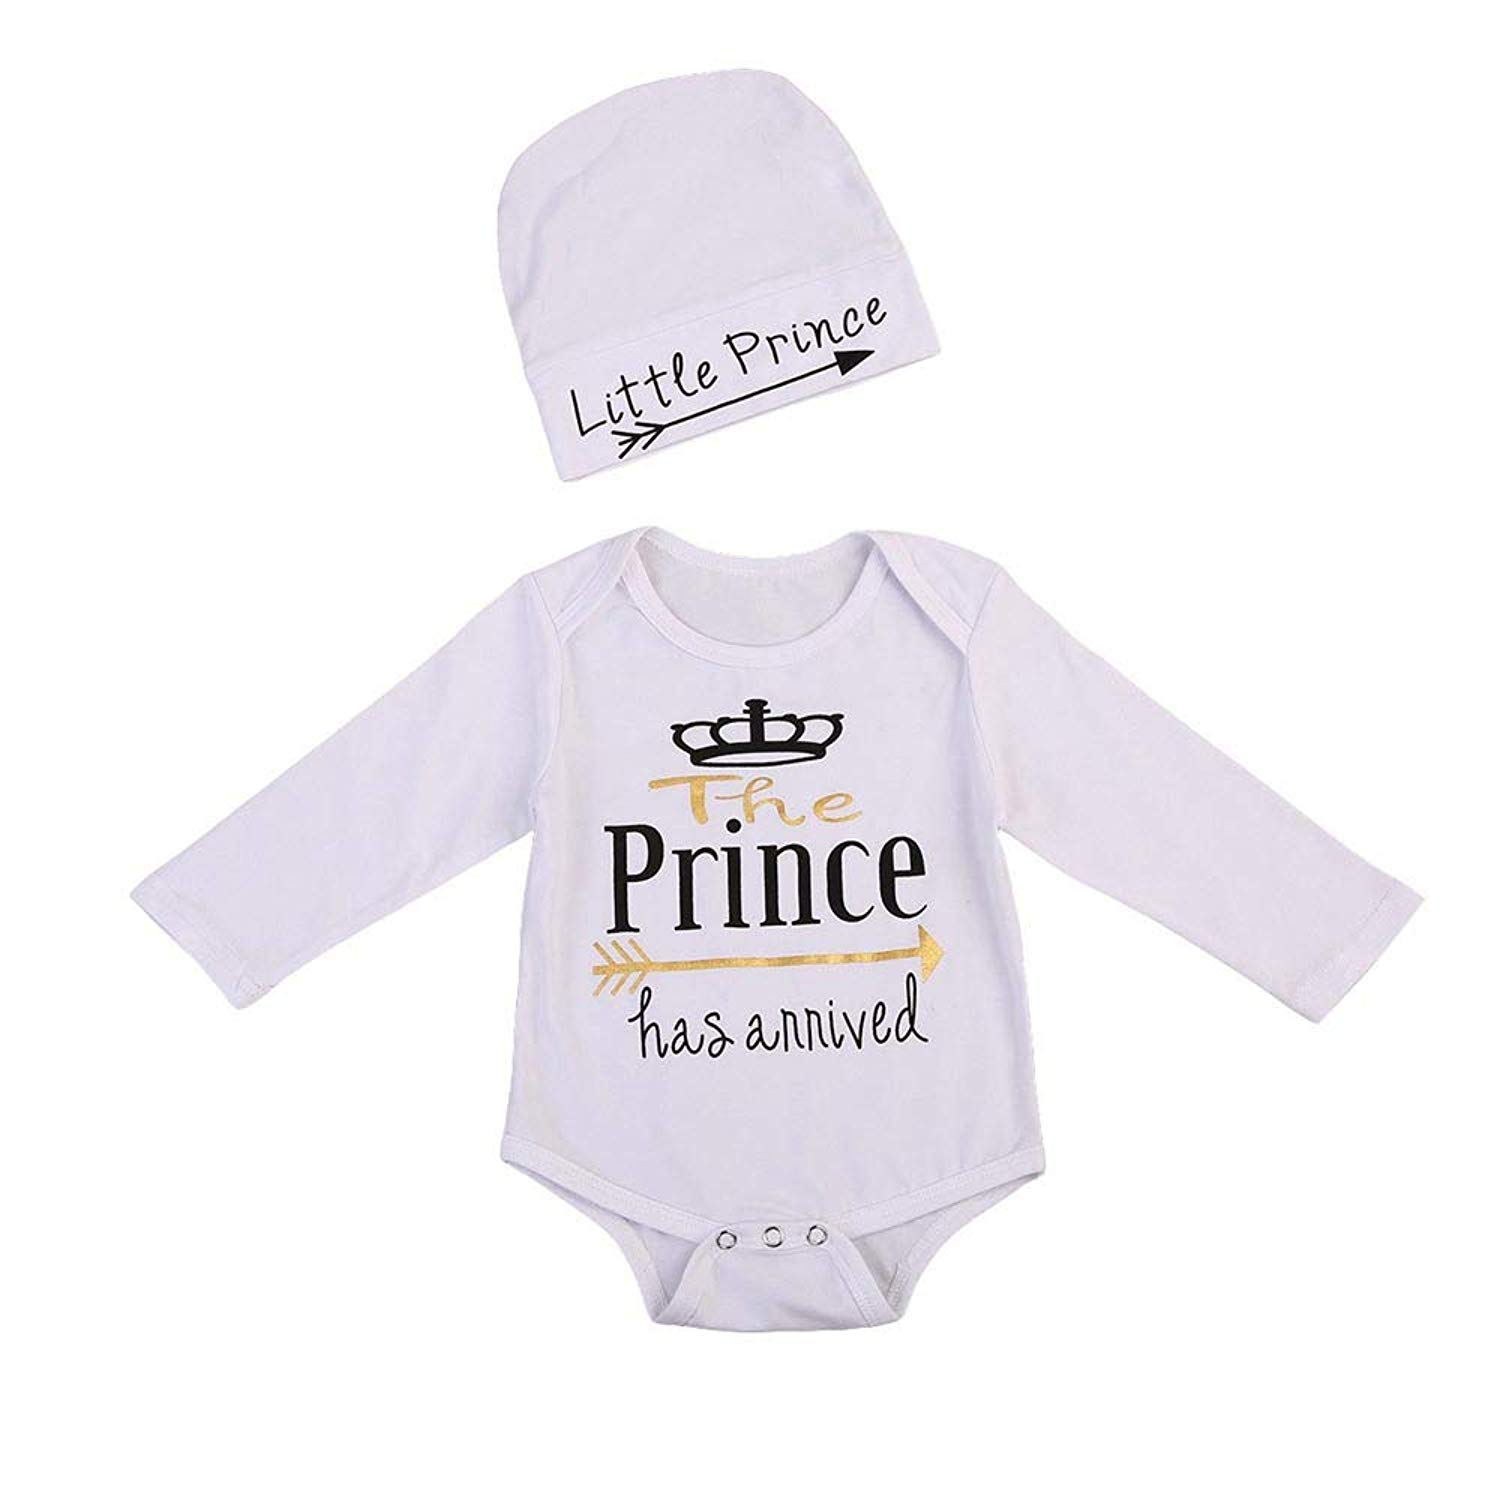 67fa6f5526ae Newborn Baby Boys Girls Long Sleeve Letter Print Romper Top+Hat Pajamas  Home Sleep Wear